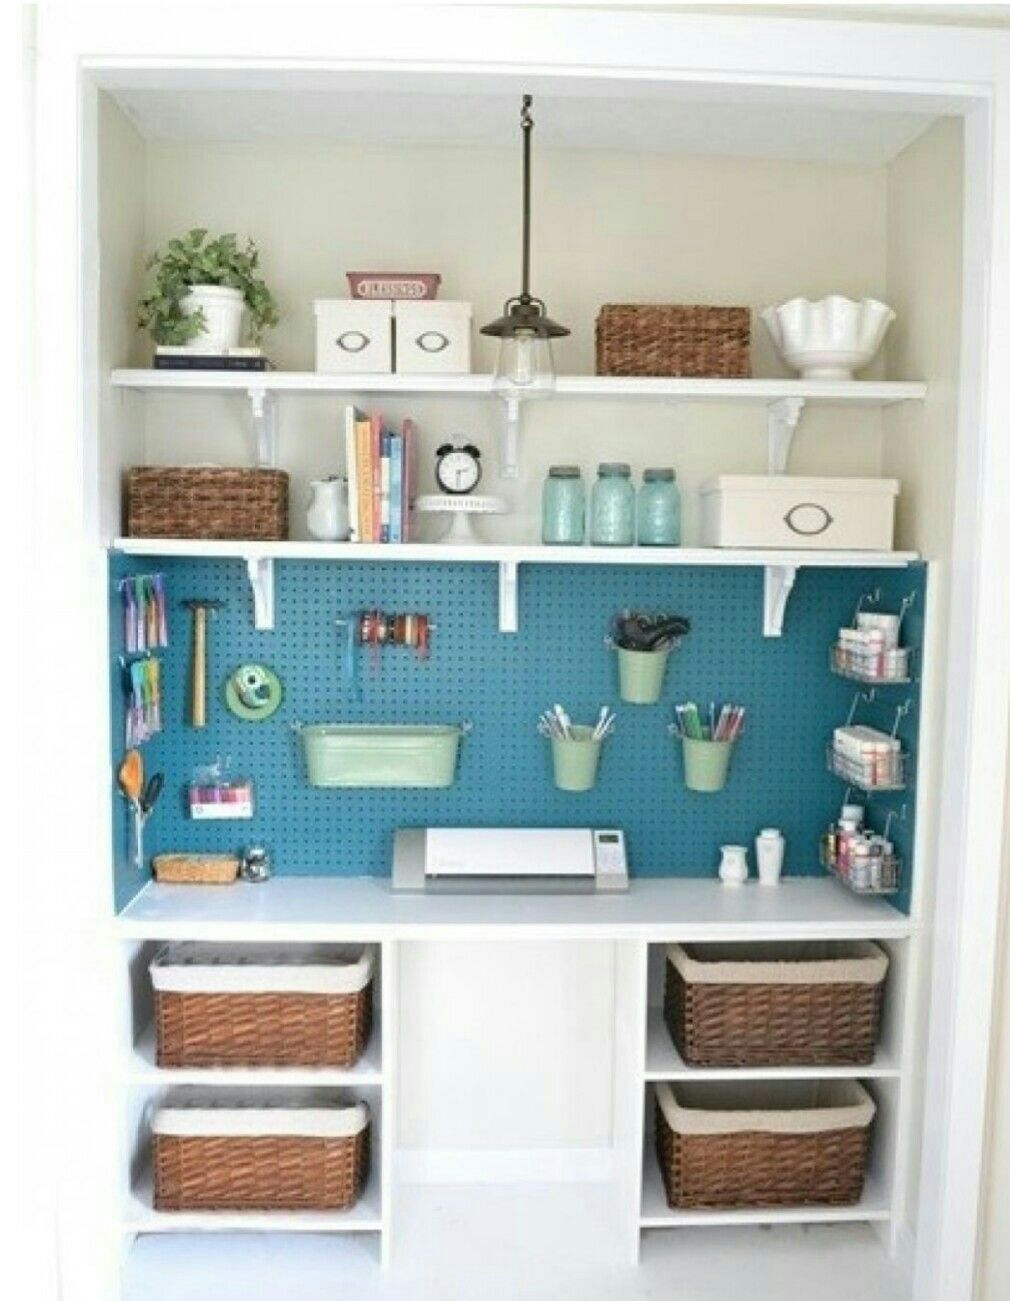 Pin by Holli Evans on Craft stuff   Pinterest   Craft and Stuffing